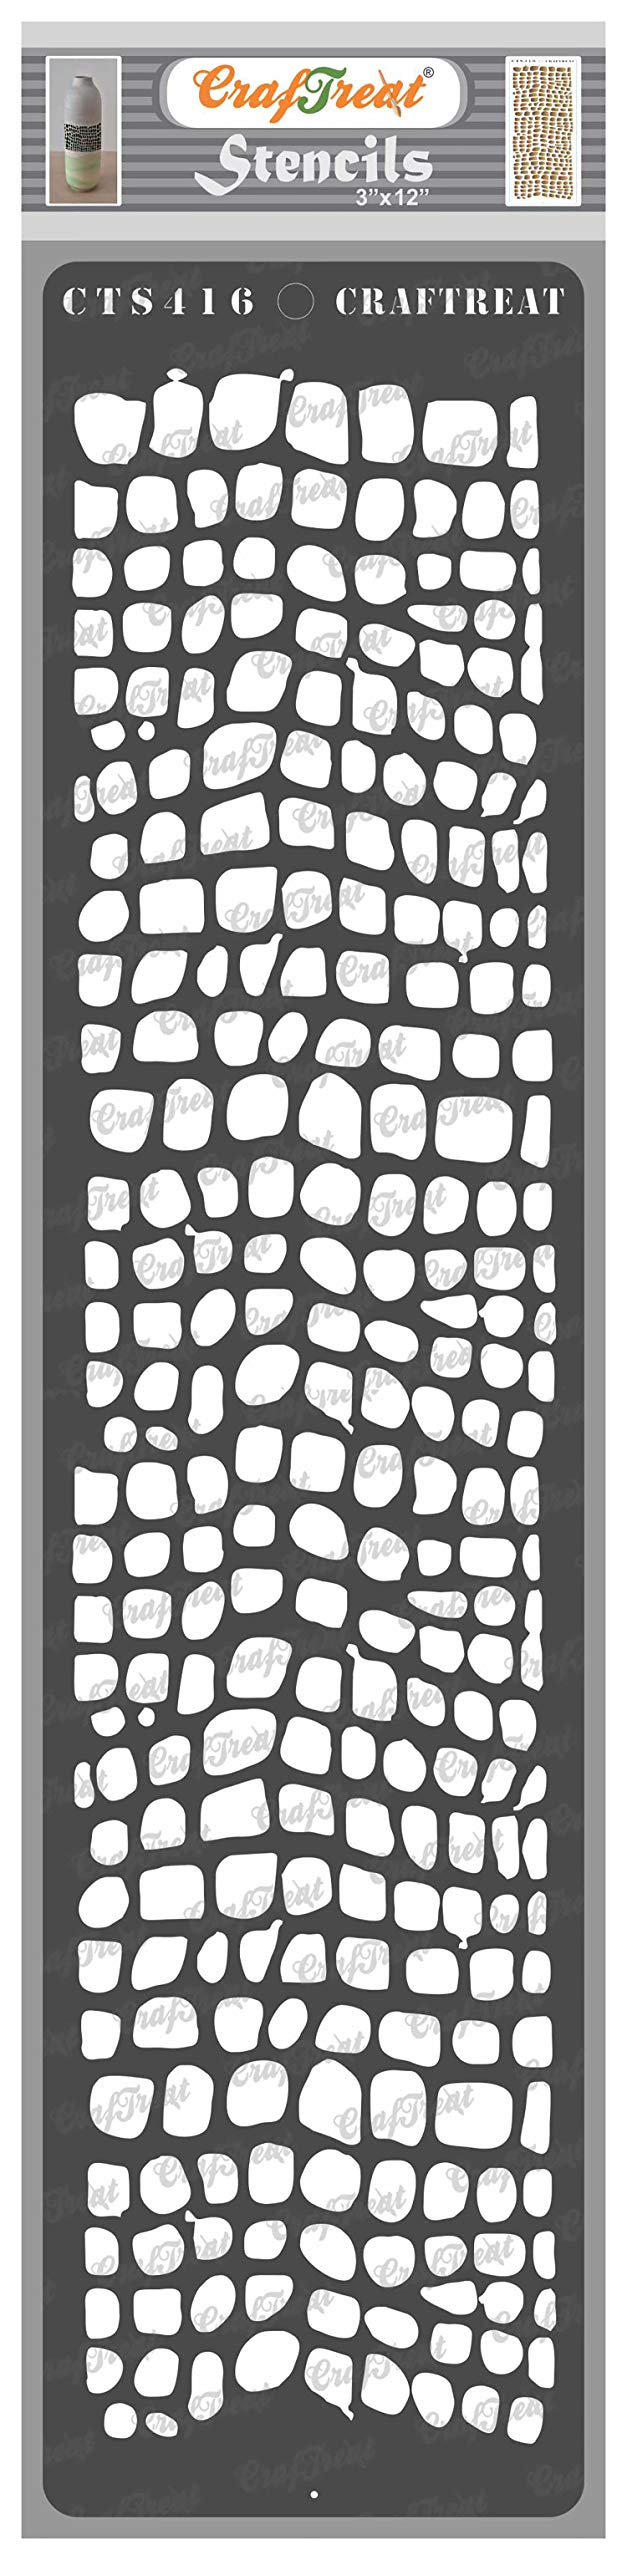 CrafTreat Snake Skin Stencils for Painting on Wood, Canvas, Paper, Fabric, Floor, Wall and Tile - Snake Skin - 3x12 Inches - Reusable DIY Art and Craft Stencils for Borders - Animal Skin Stencil